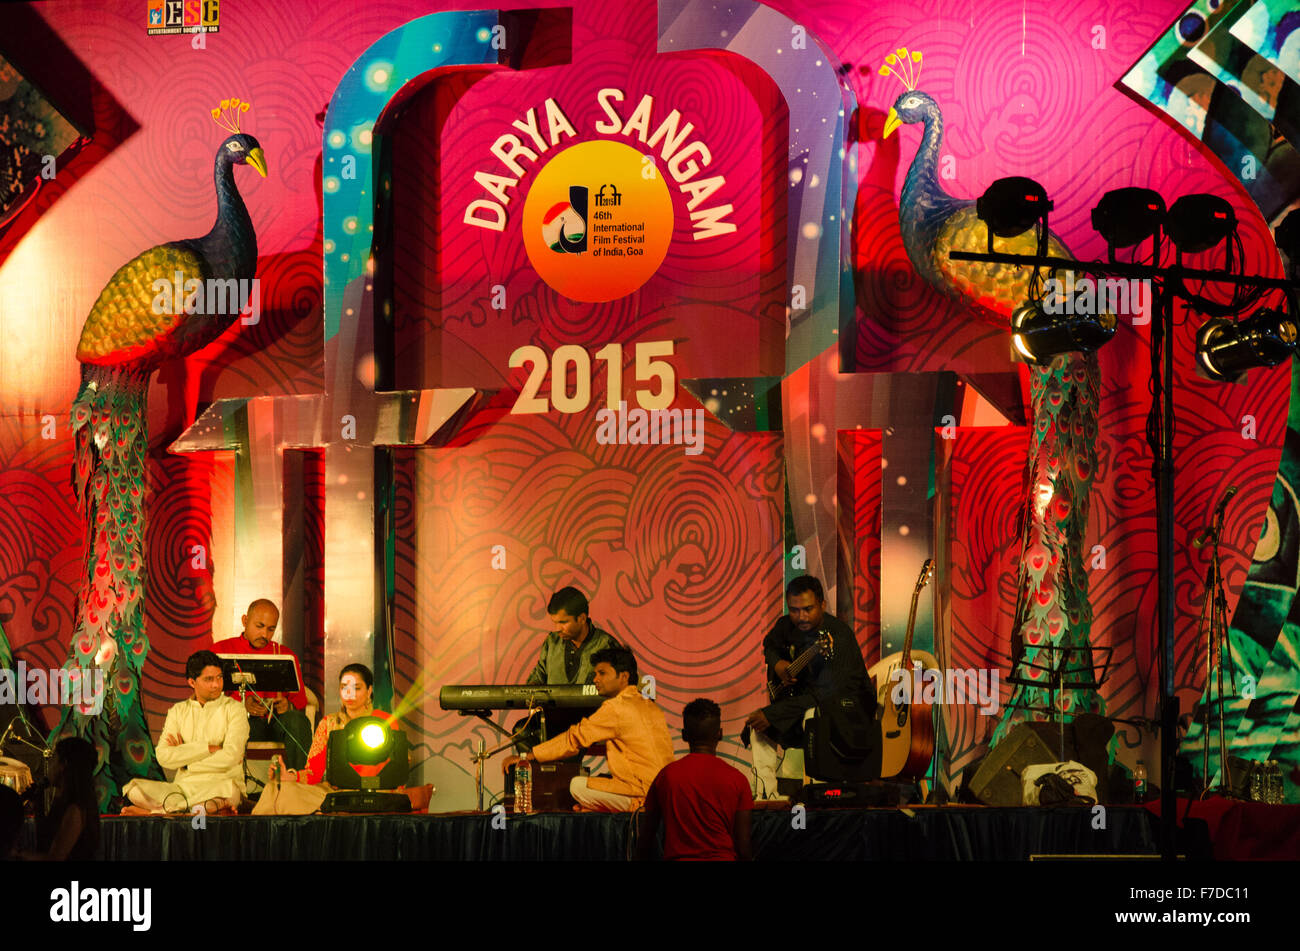 Artists performing in an open air venue namely Darya Sangam, for the 46th edition of International Film Festival - Stock Image